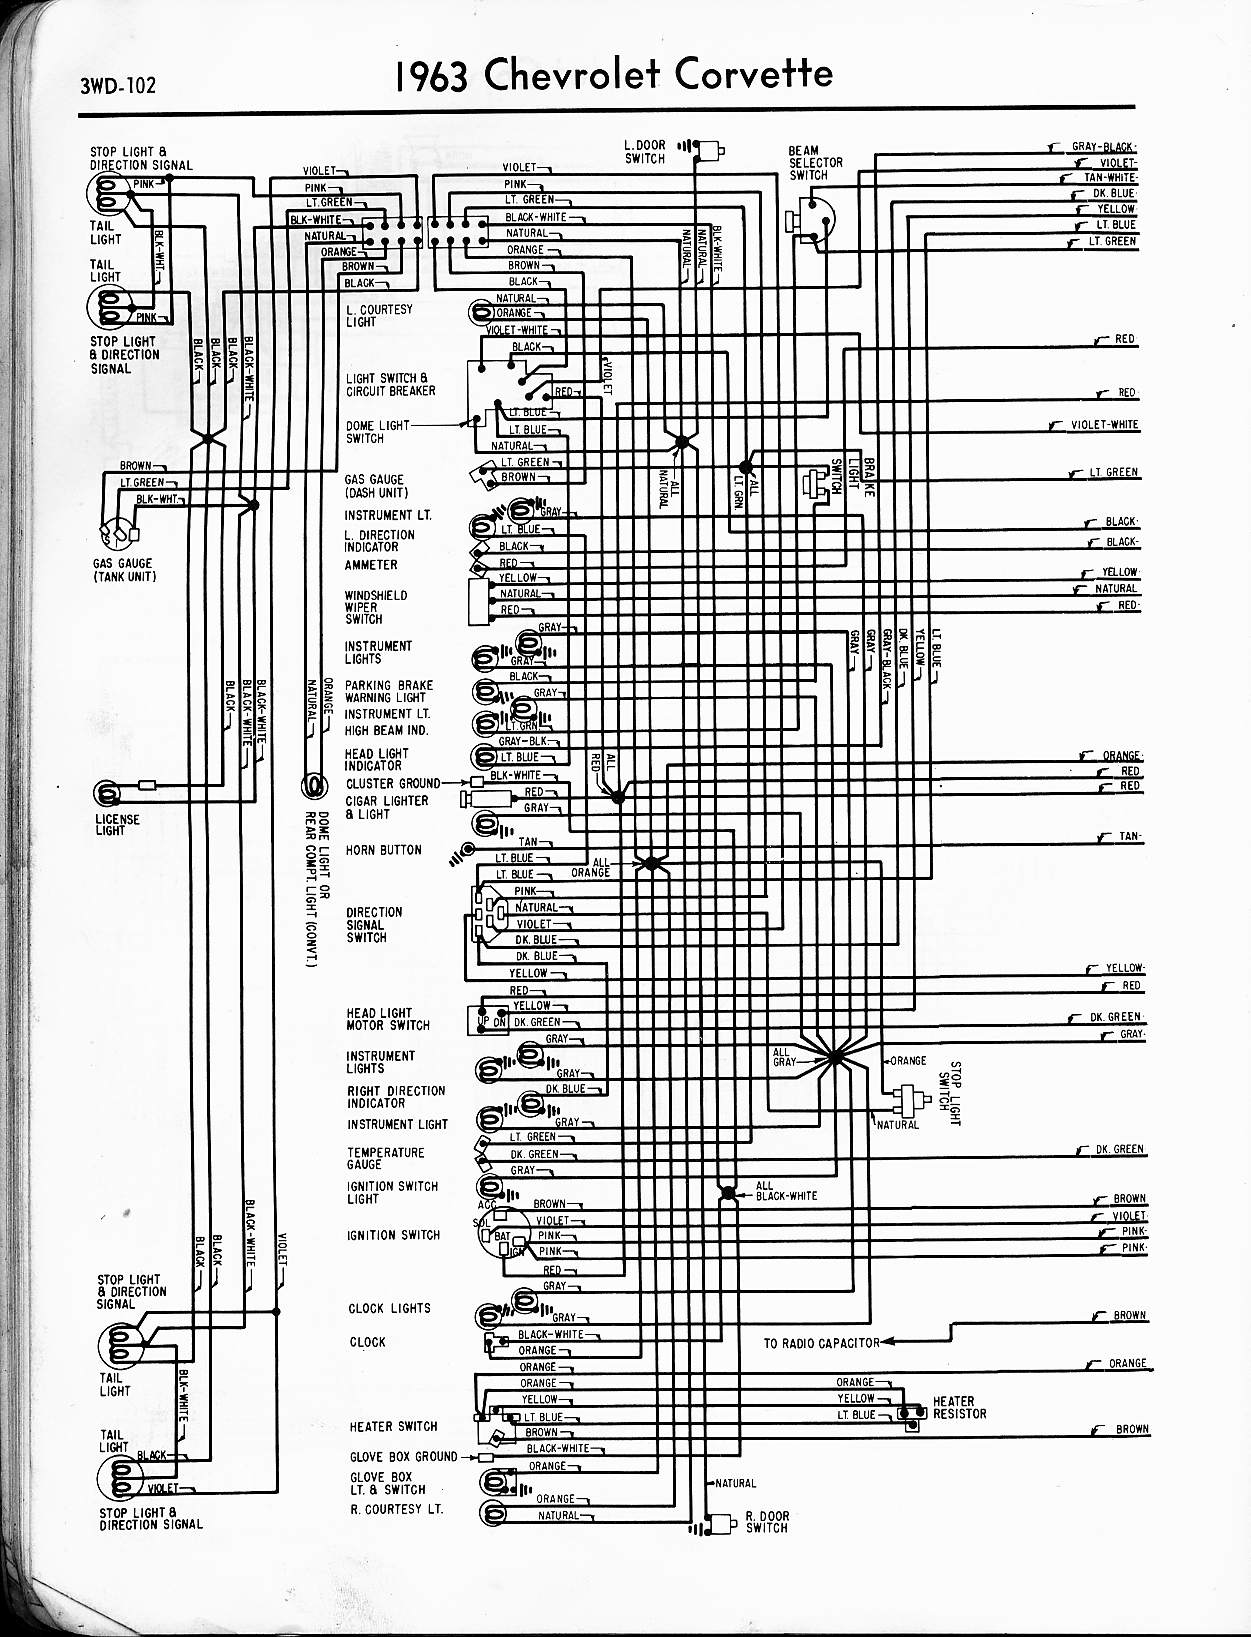 1964 corvette wiring diagram schematics wiring diagrams \u2022 wire diagram for 1977 chevy c10 57 65 chevy wiring diagrams rh oldcarmanualproject com 1969 corvette wiring diagram download pdf 1969 corvette